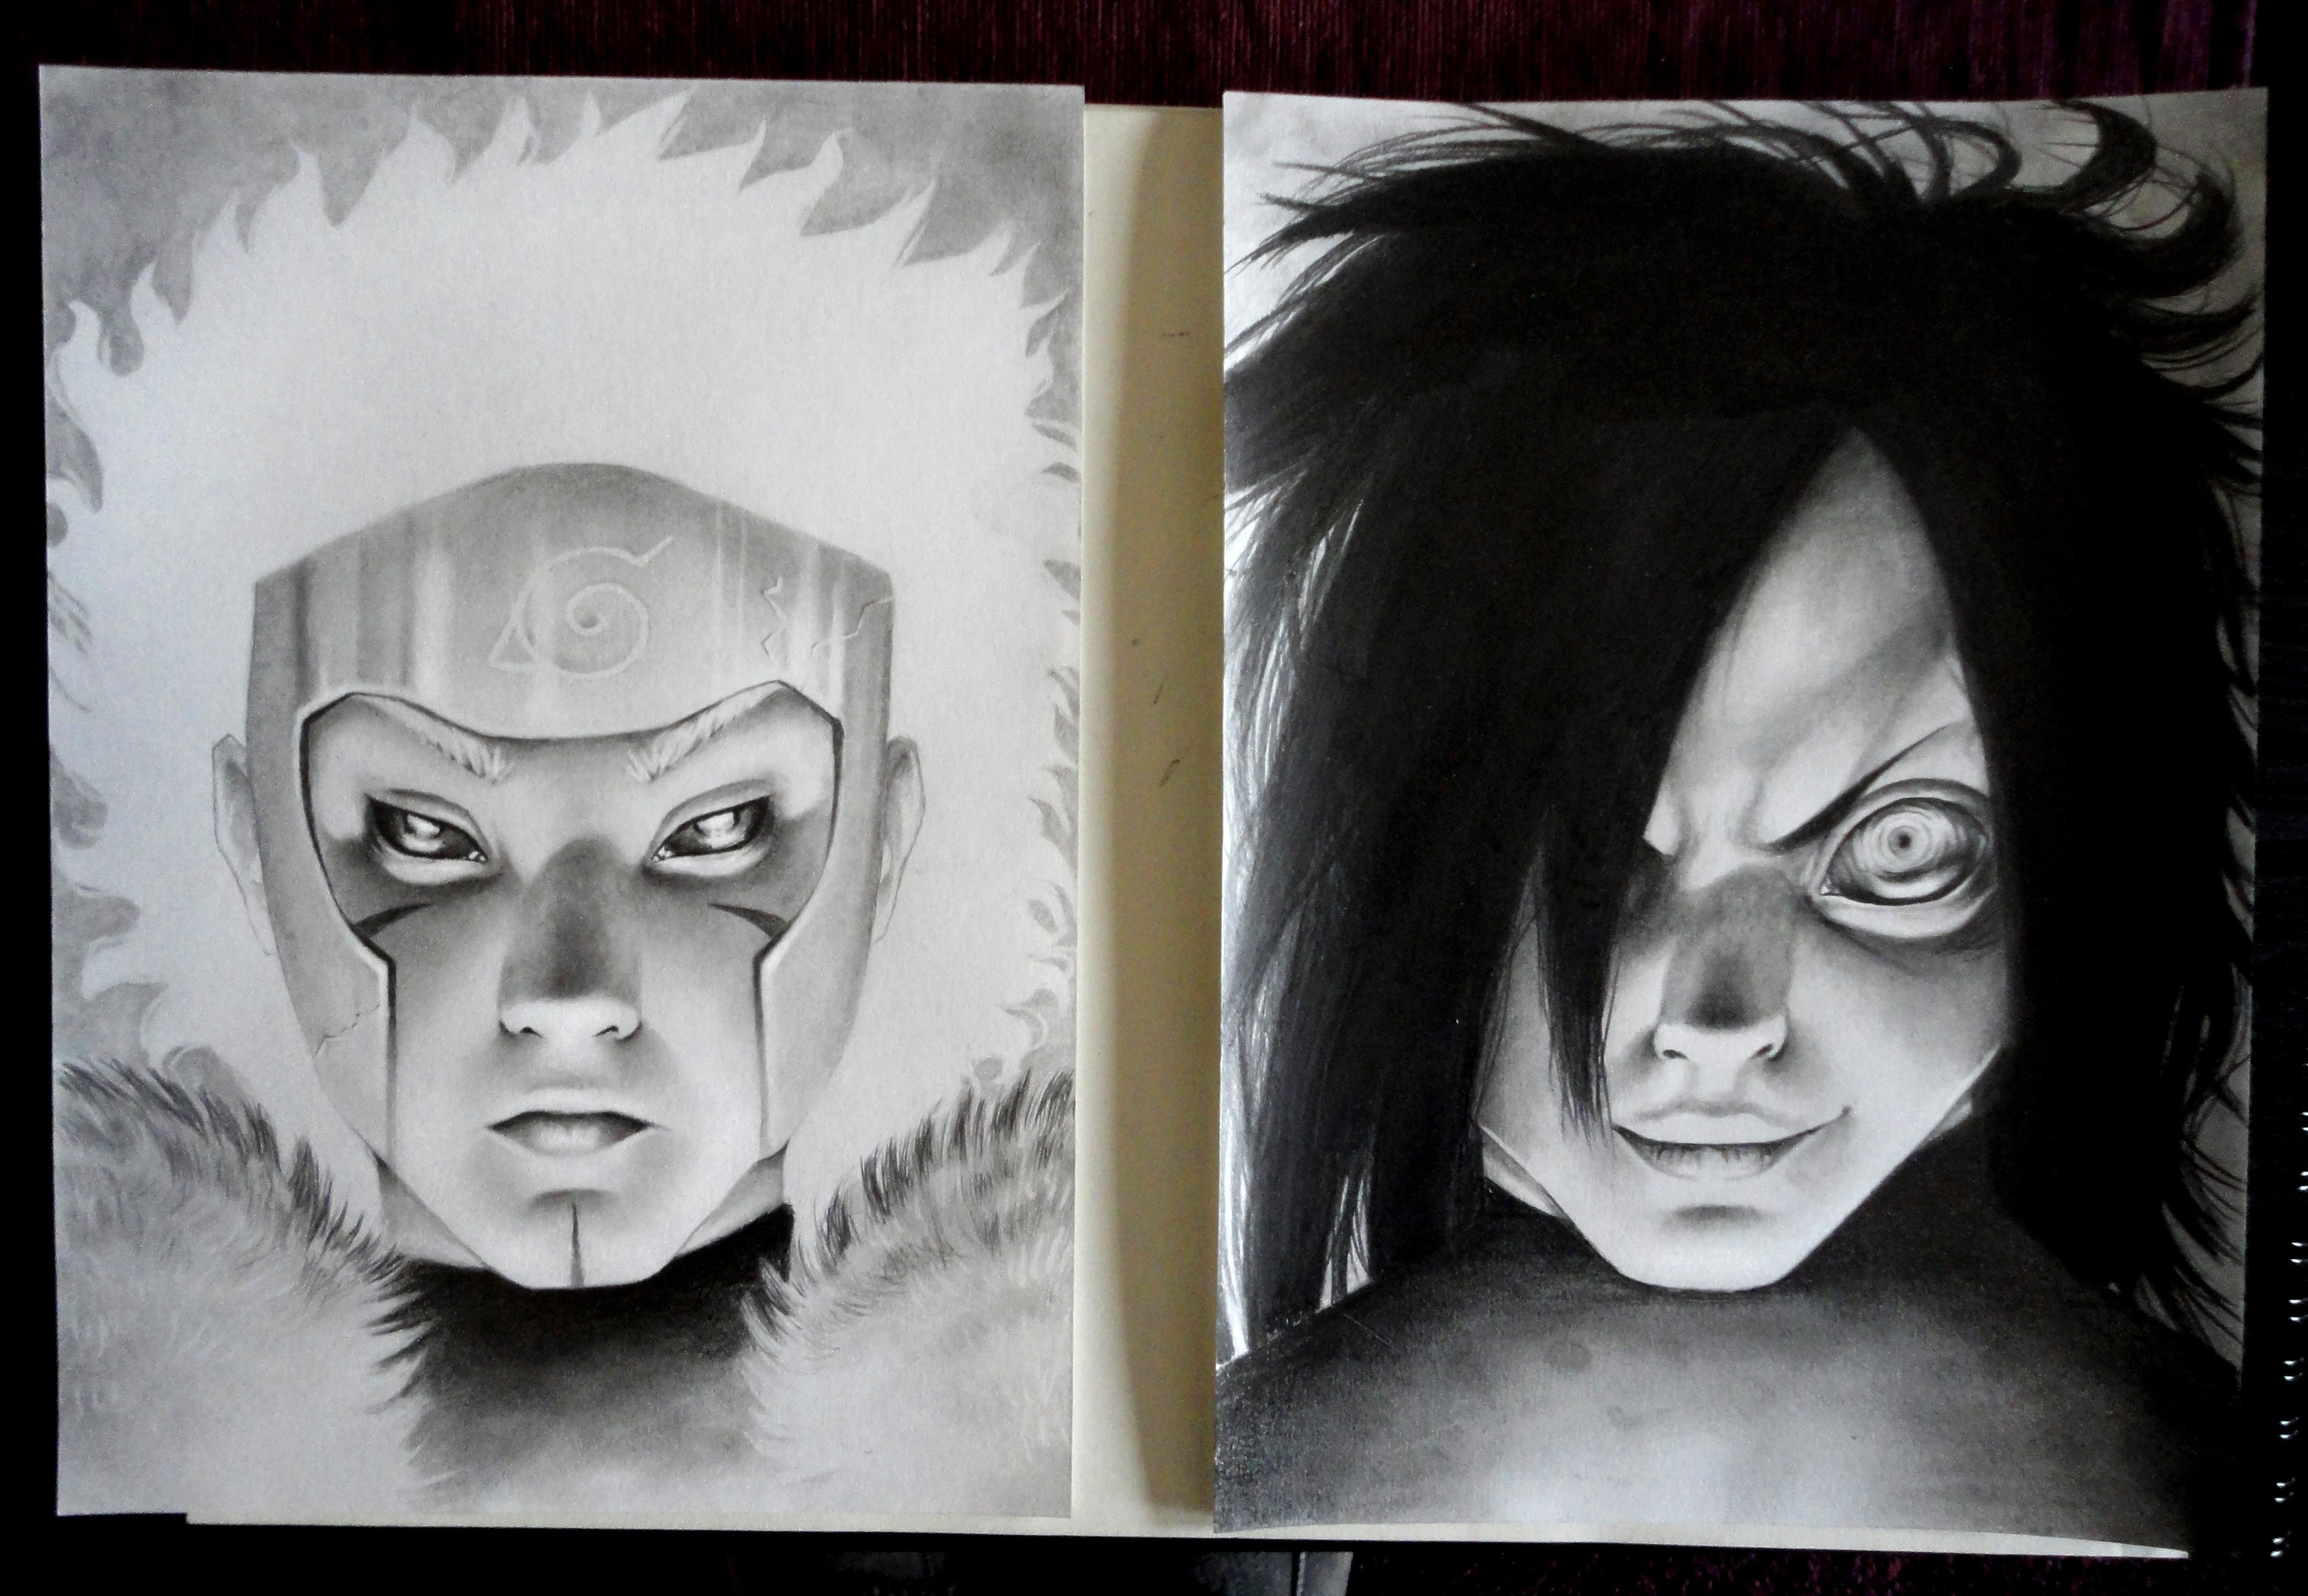 I Drew Tobirama And Madara In December After Finishing The Manga My First Naruto Fanarts Since 2008 An Unfinished Hashirama Can Be Found In The Comments Naruto